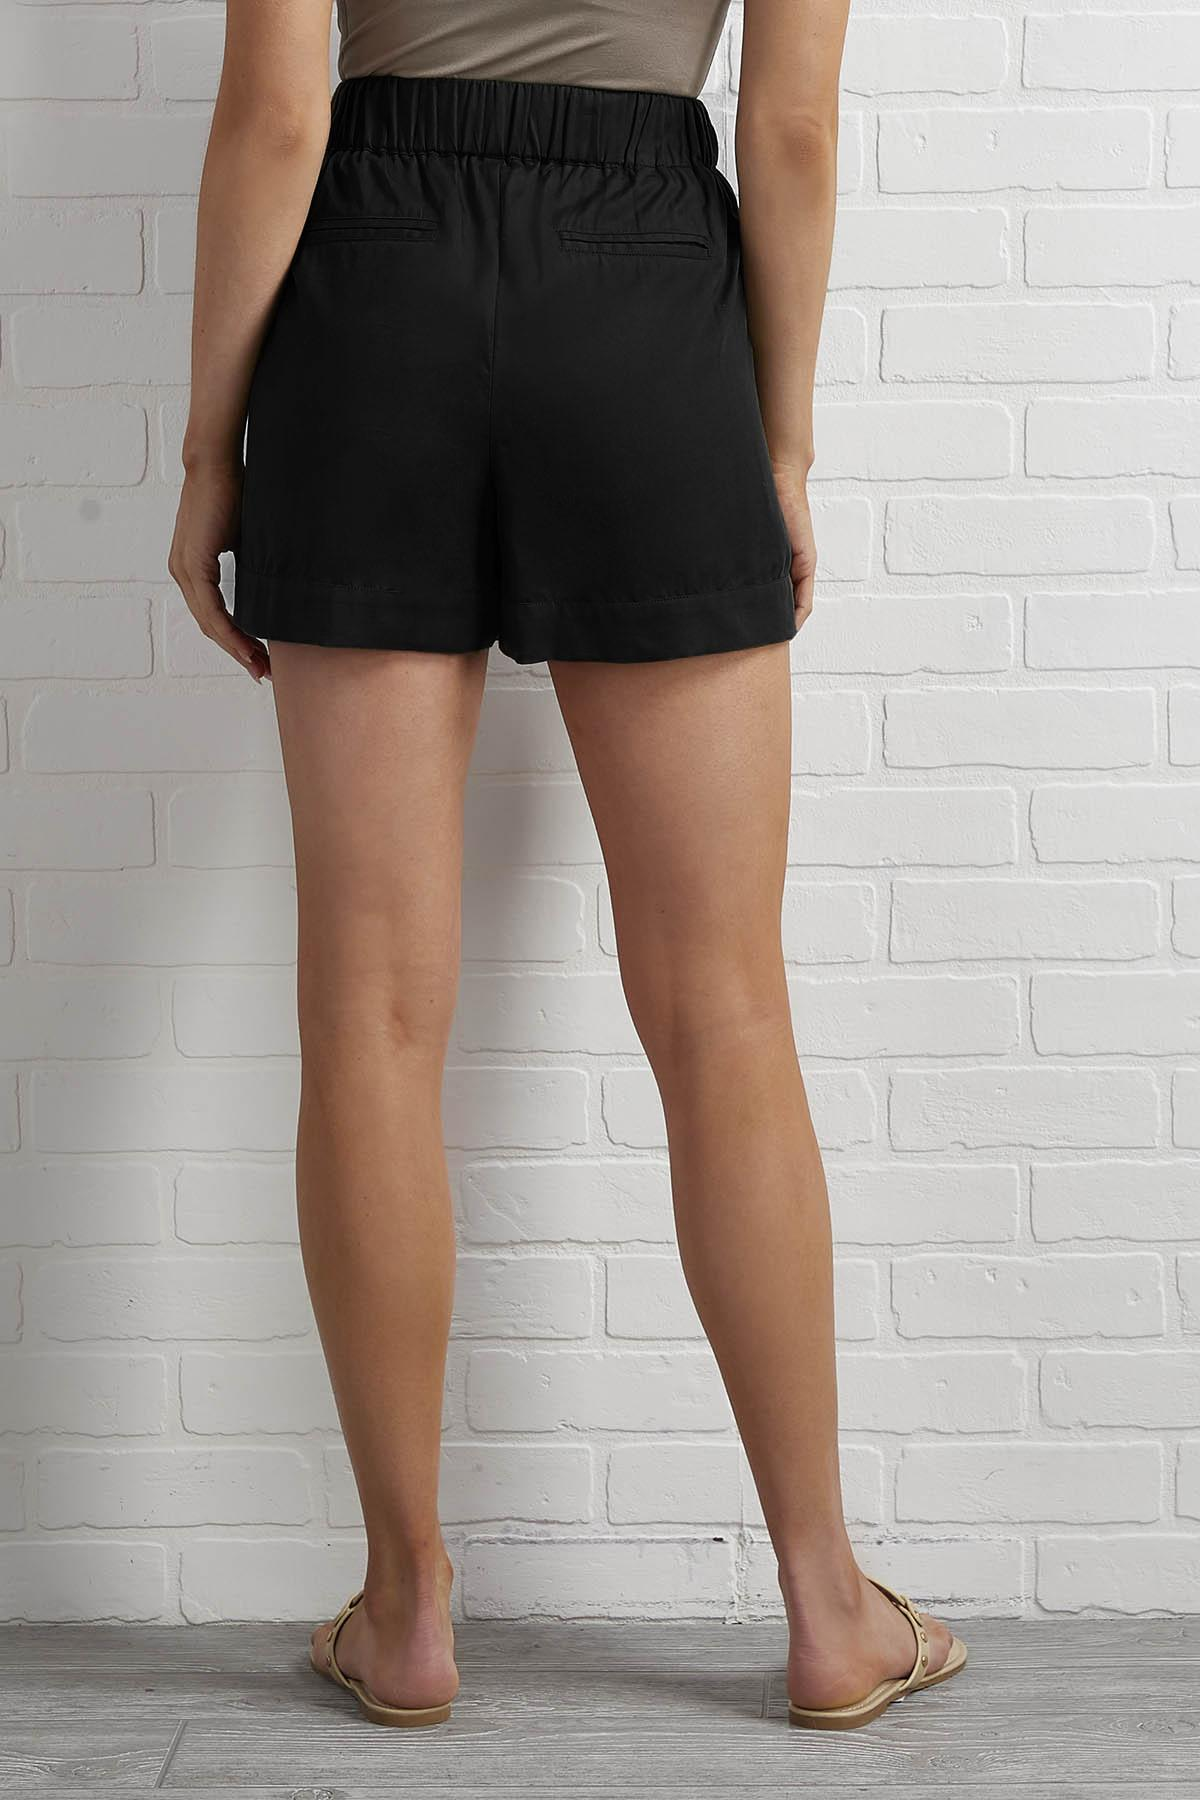 Short And Simple Shorts